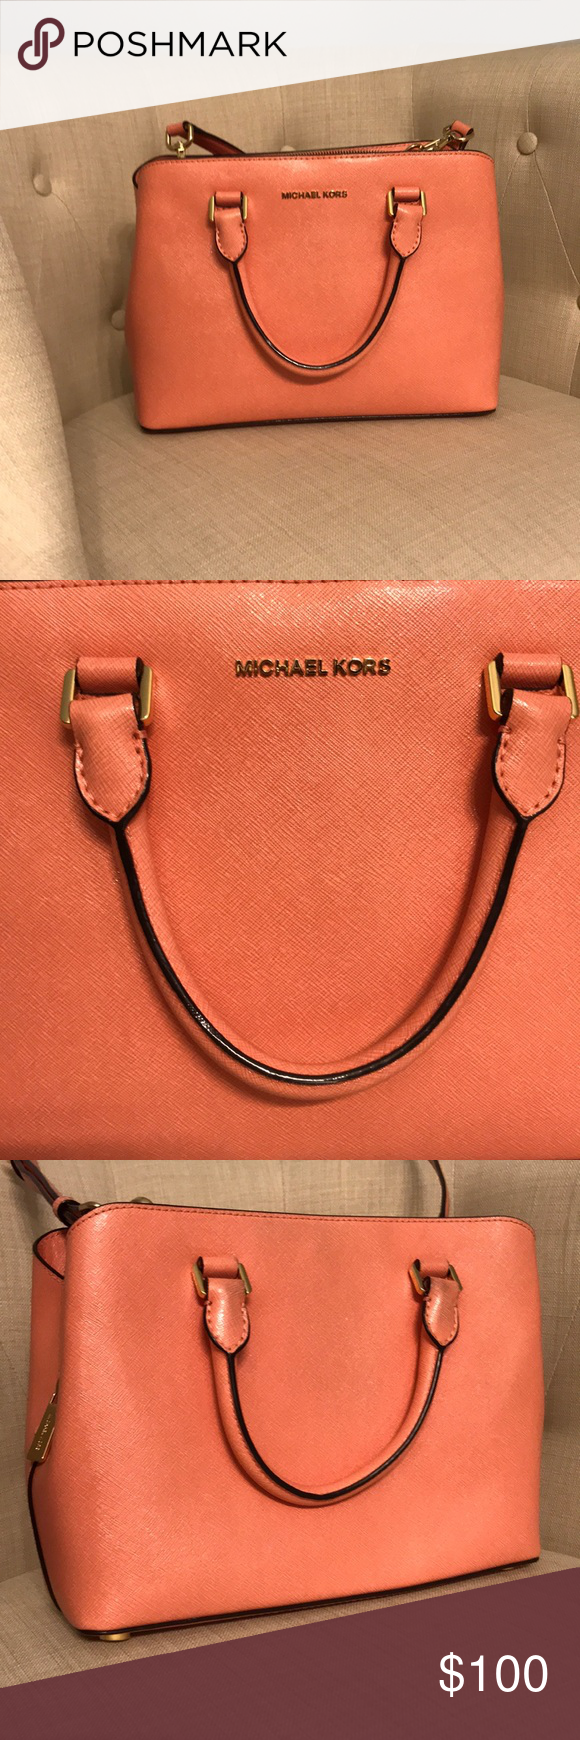 bf215abe4b8 Peach color-great used condition! Slight marks on handle from wear—see  pics. Perfect for SPRING🌼🌸 Michael Kors Bags Satchels